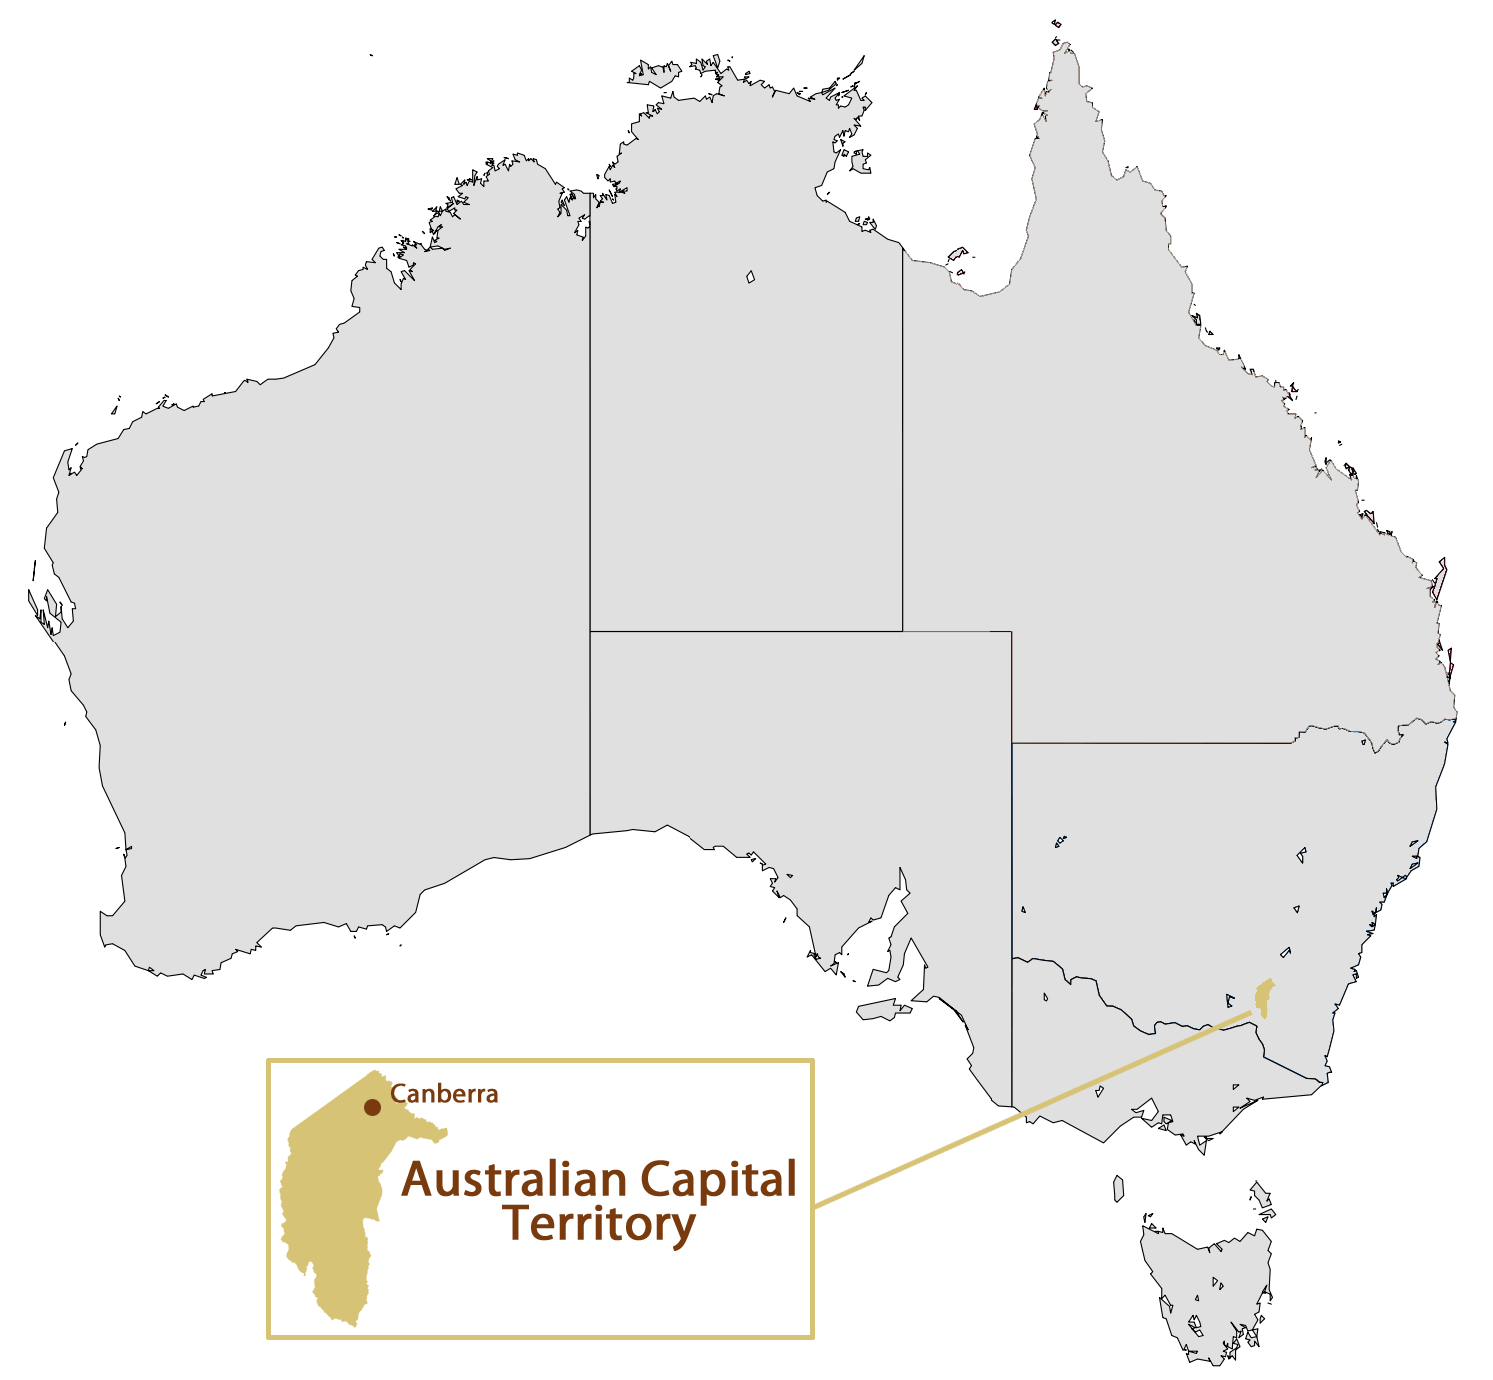 Location Map of Canberra